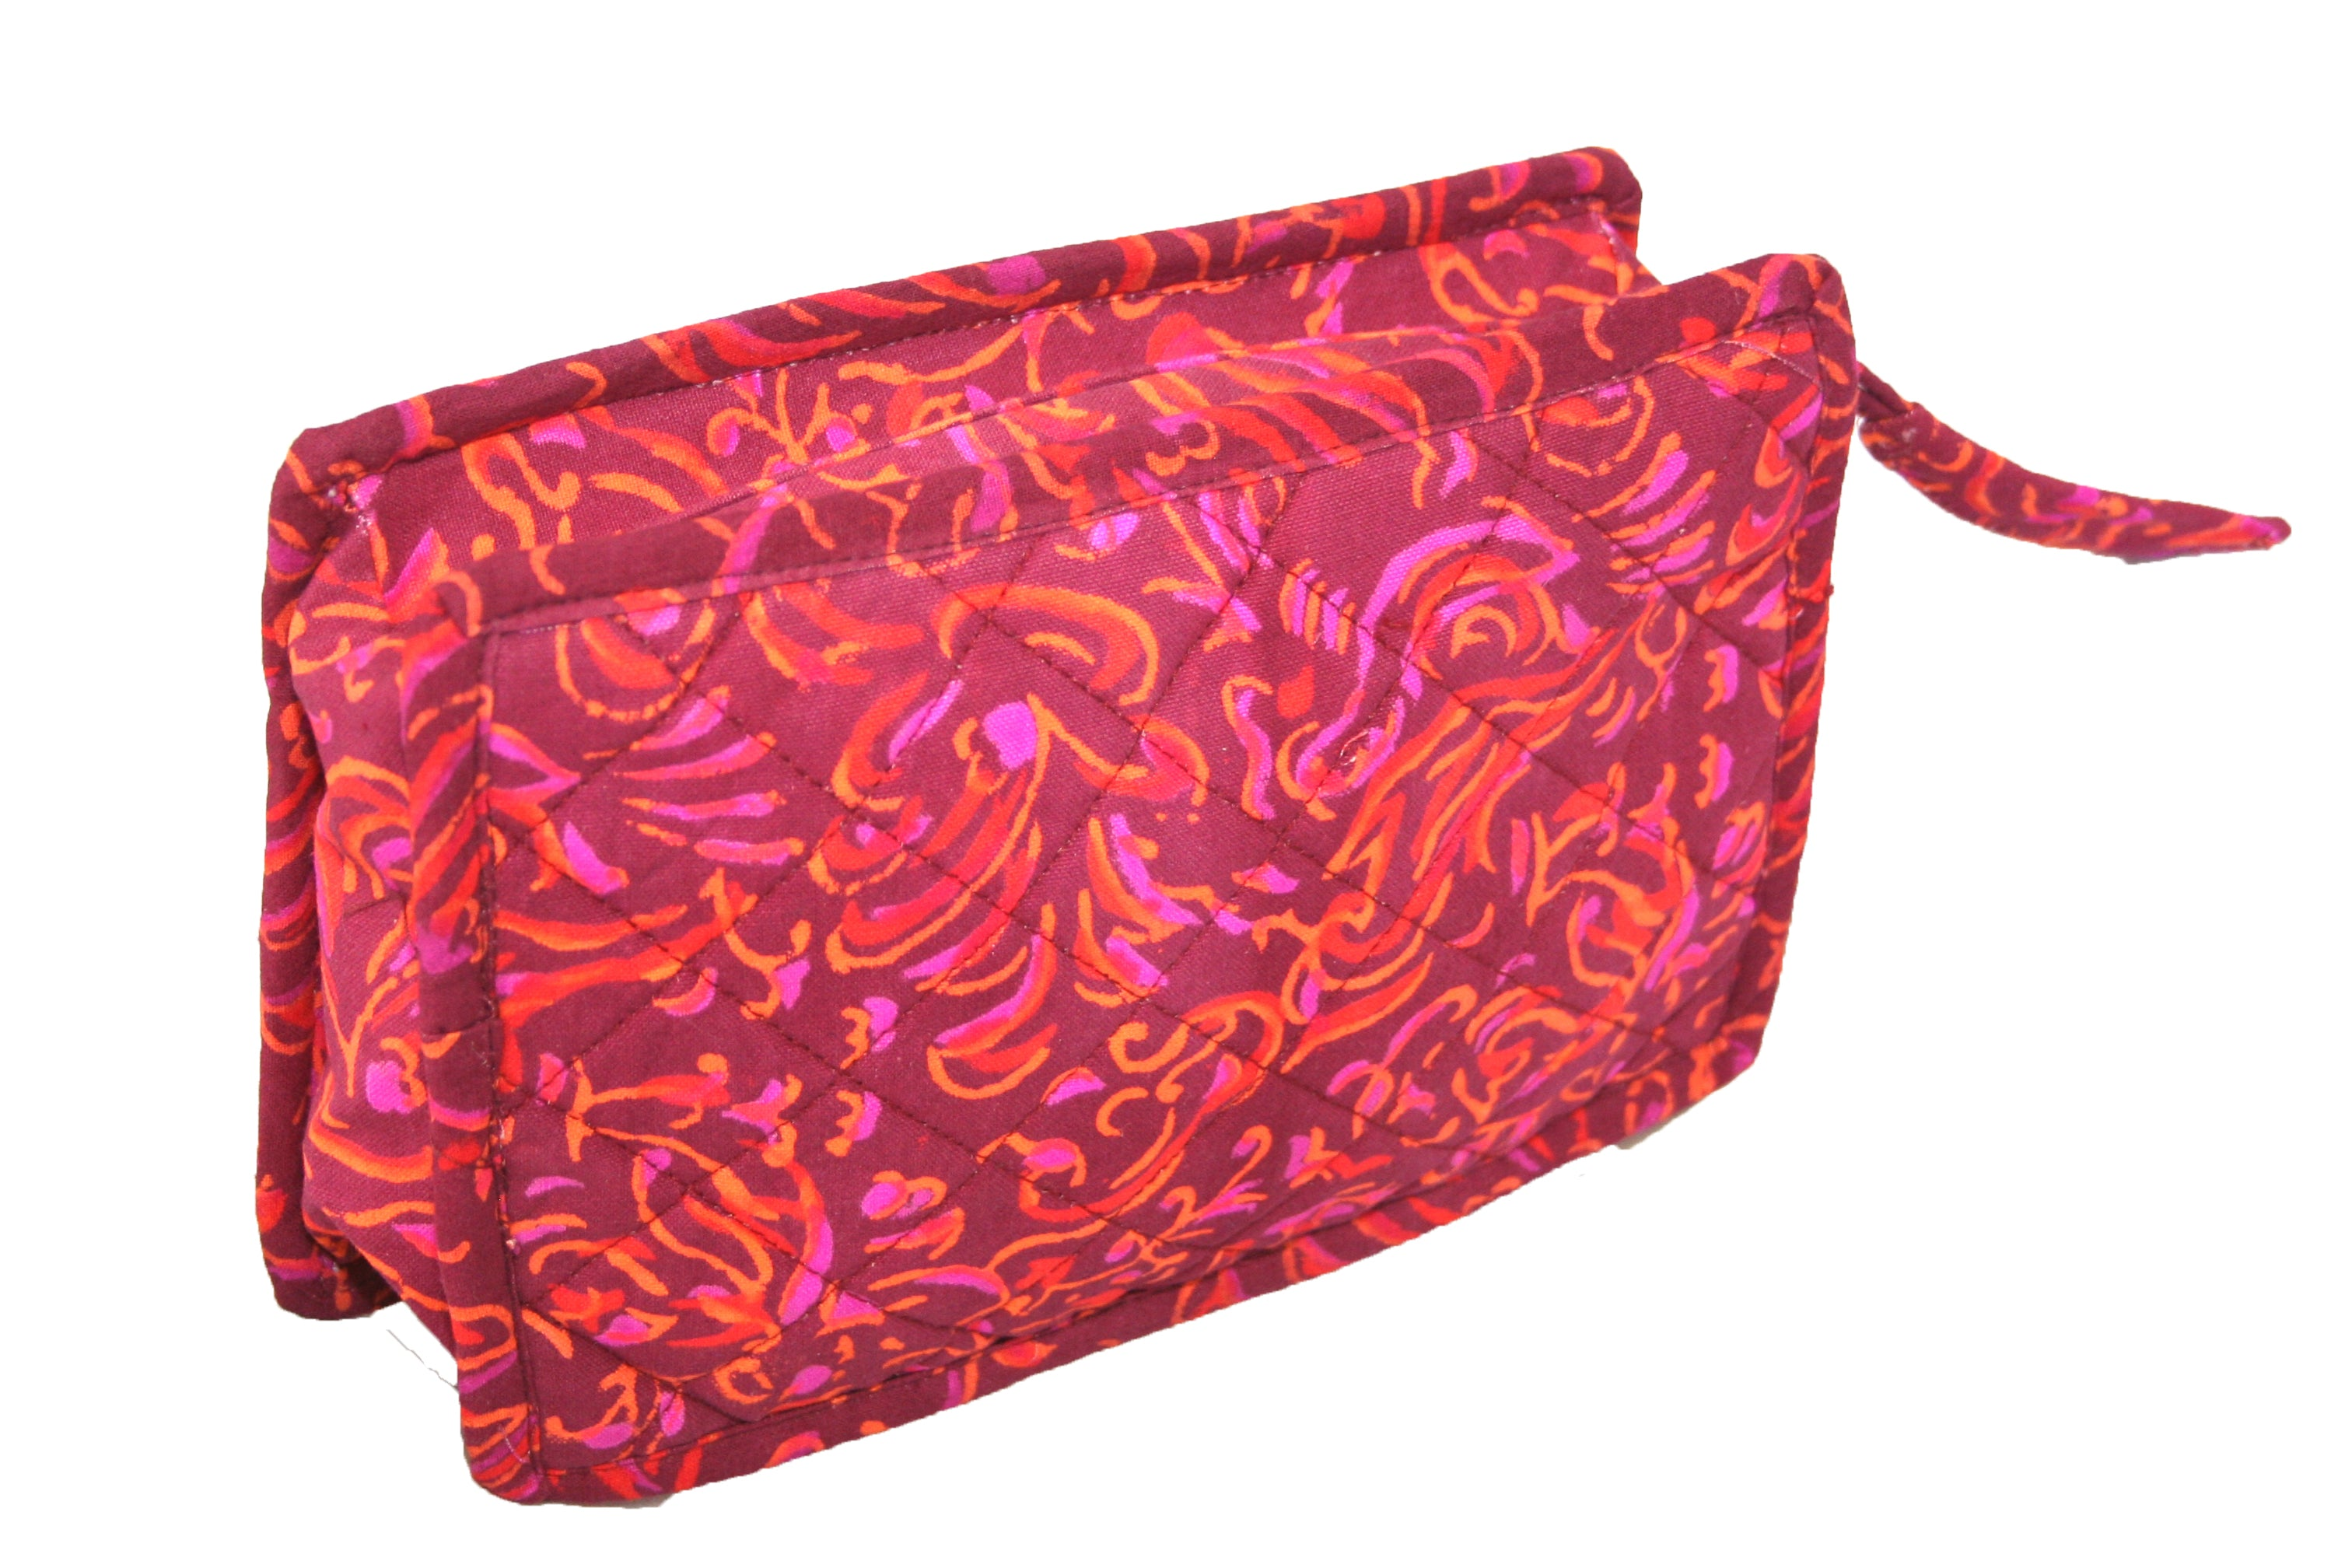 Block Printed Cotton Quilted Sanganeer Clutch Bag 9 x 7